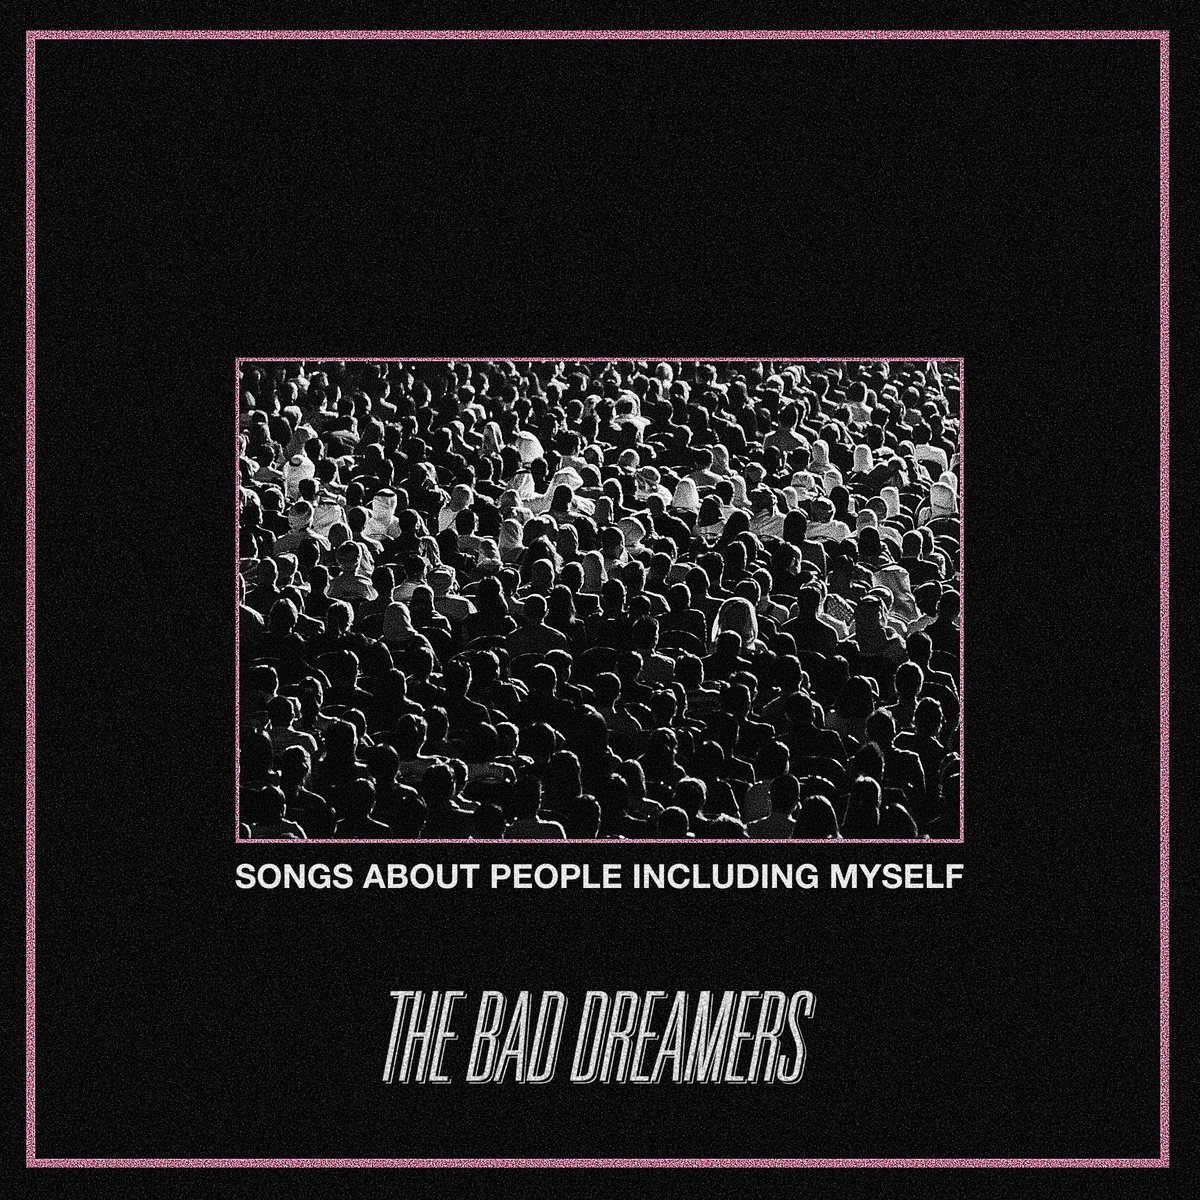 a0003881678 10 - The Bad Dreamers - Songs About People Including Myself